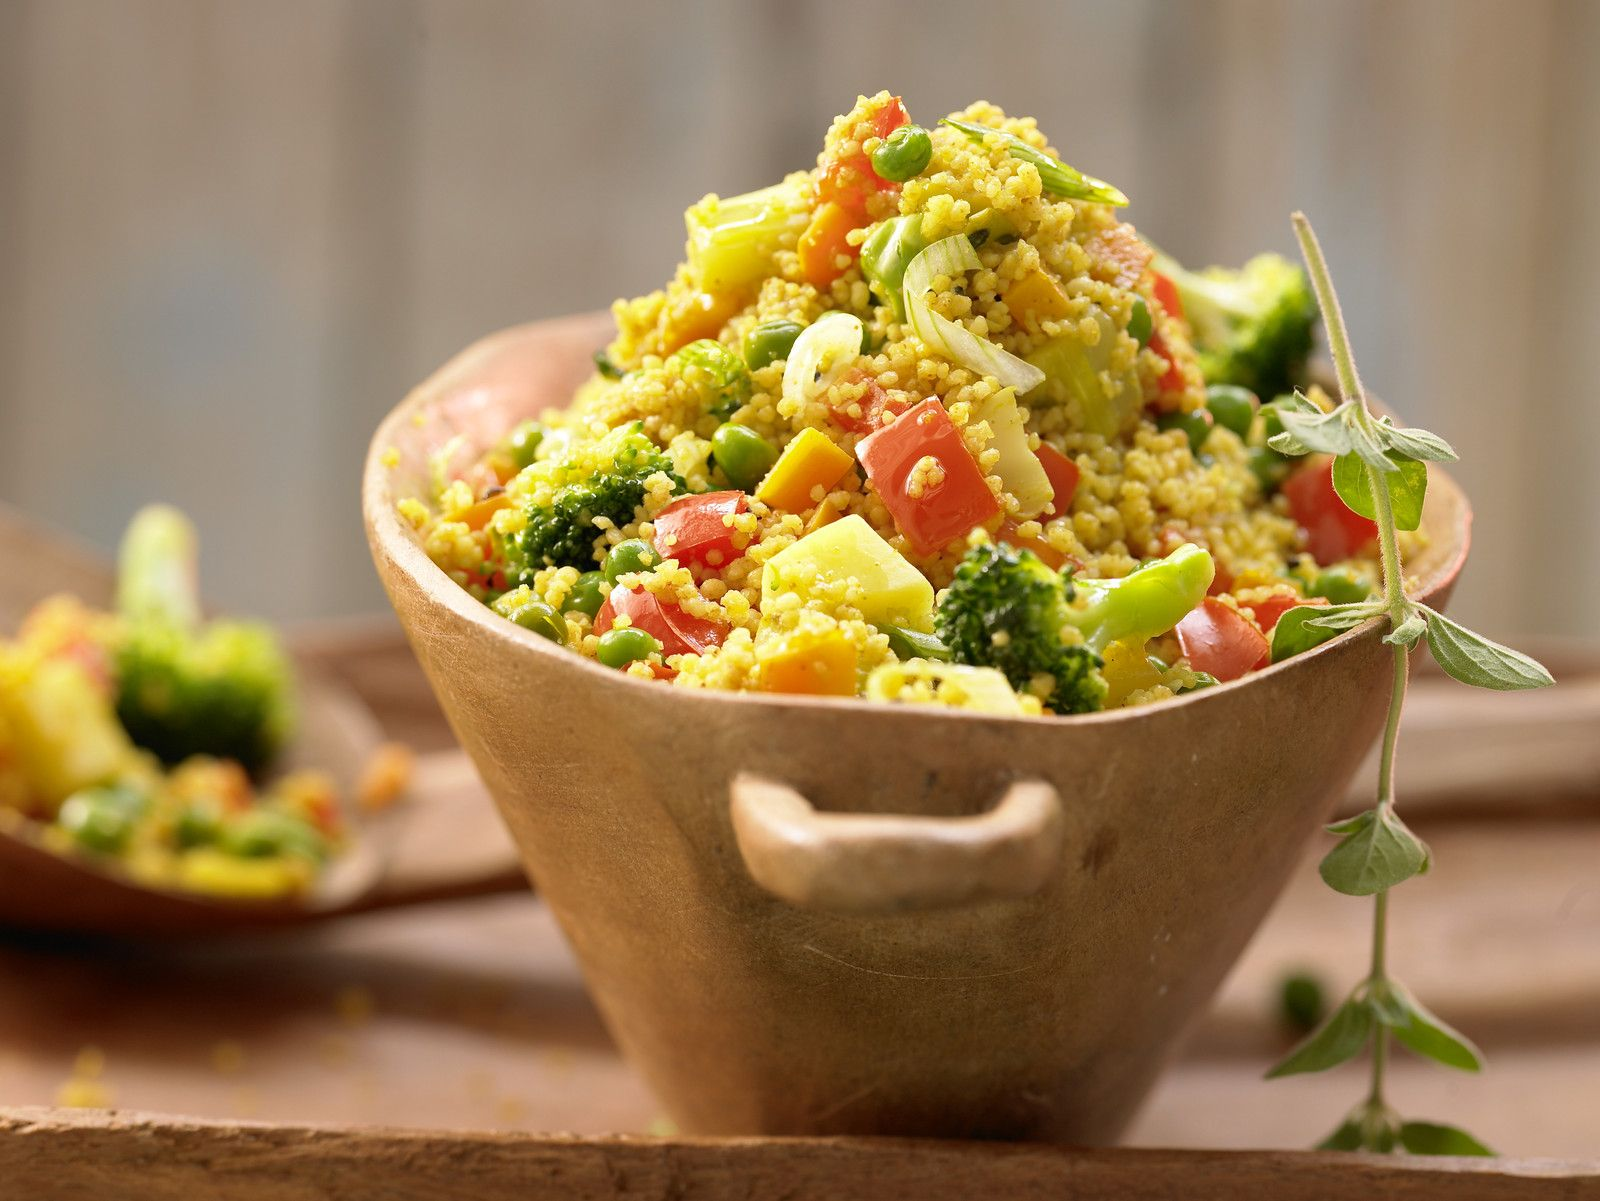 Photo of Couscous and vegetable dish